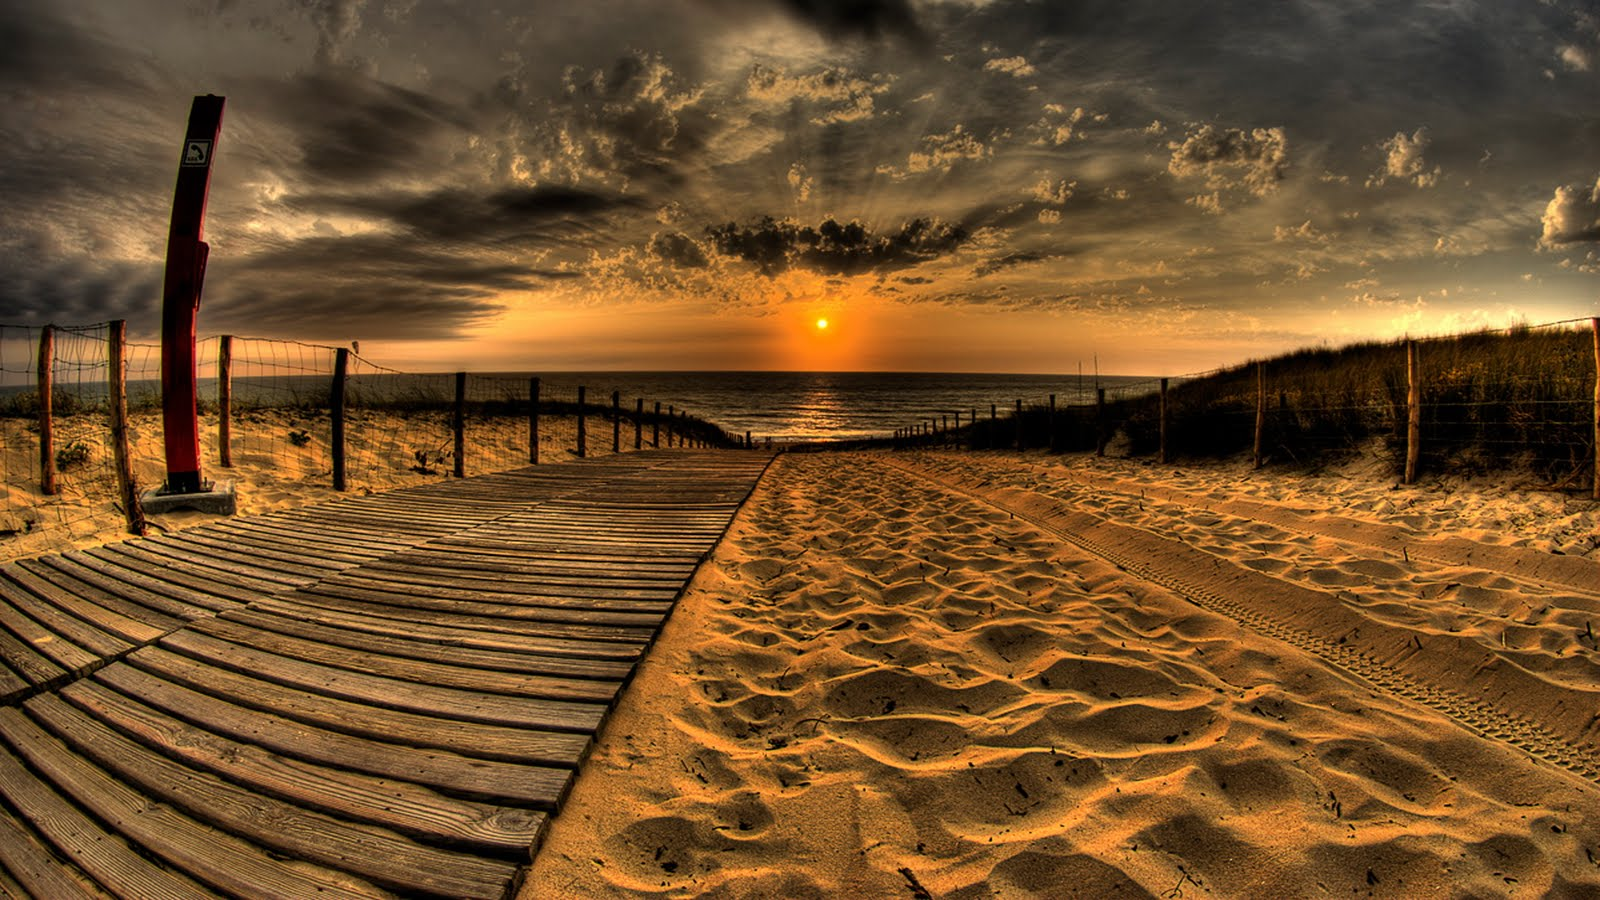 46 Free Windows Wallpaper Sunrises On Wallpapersafari